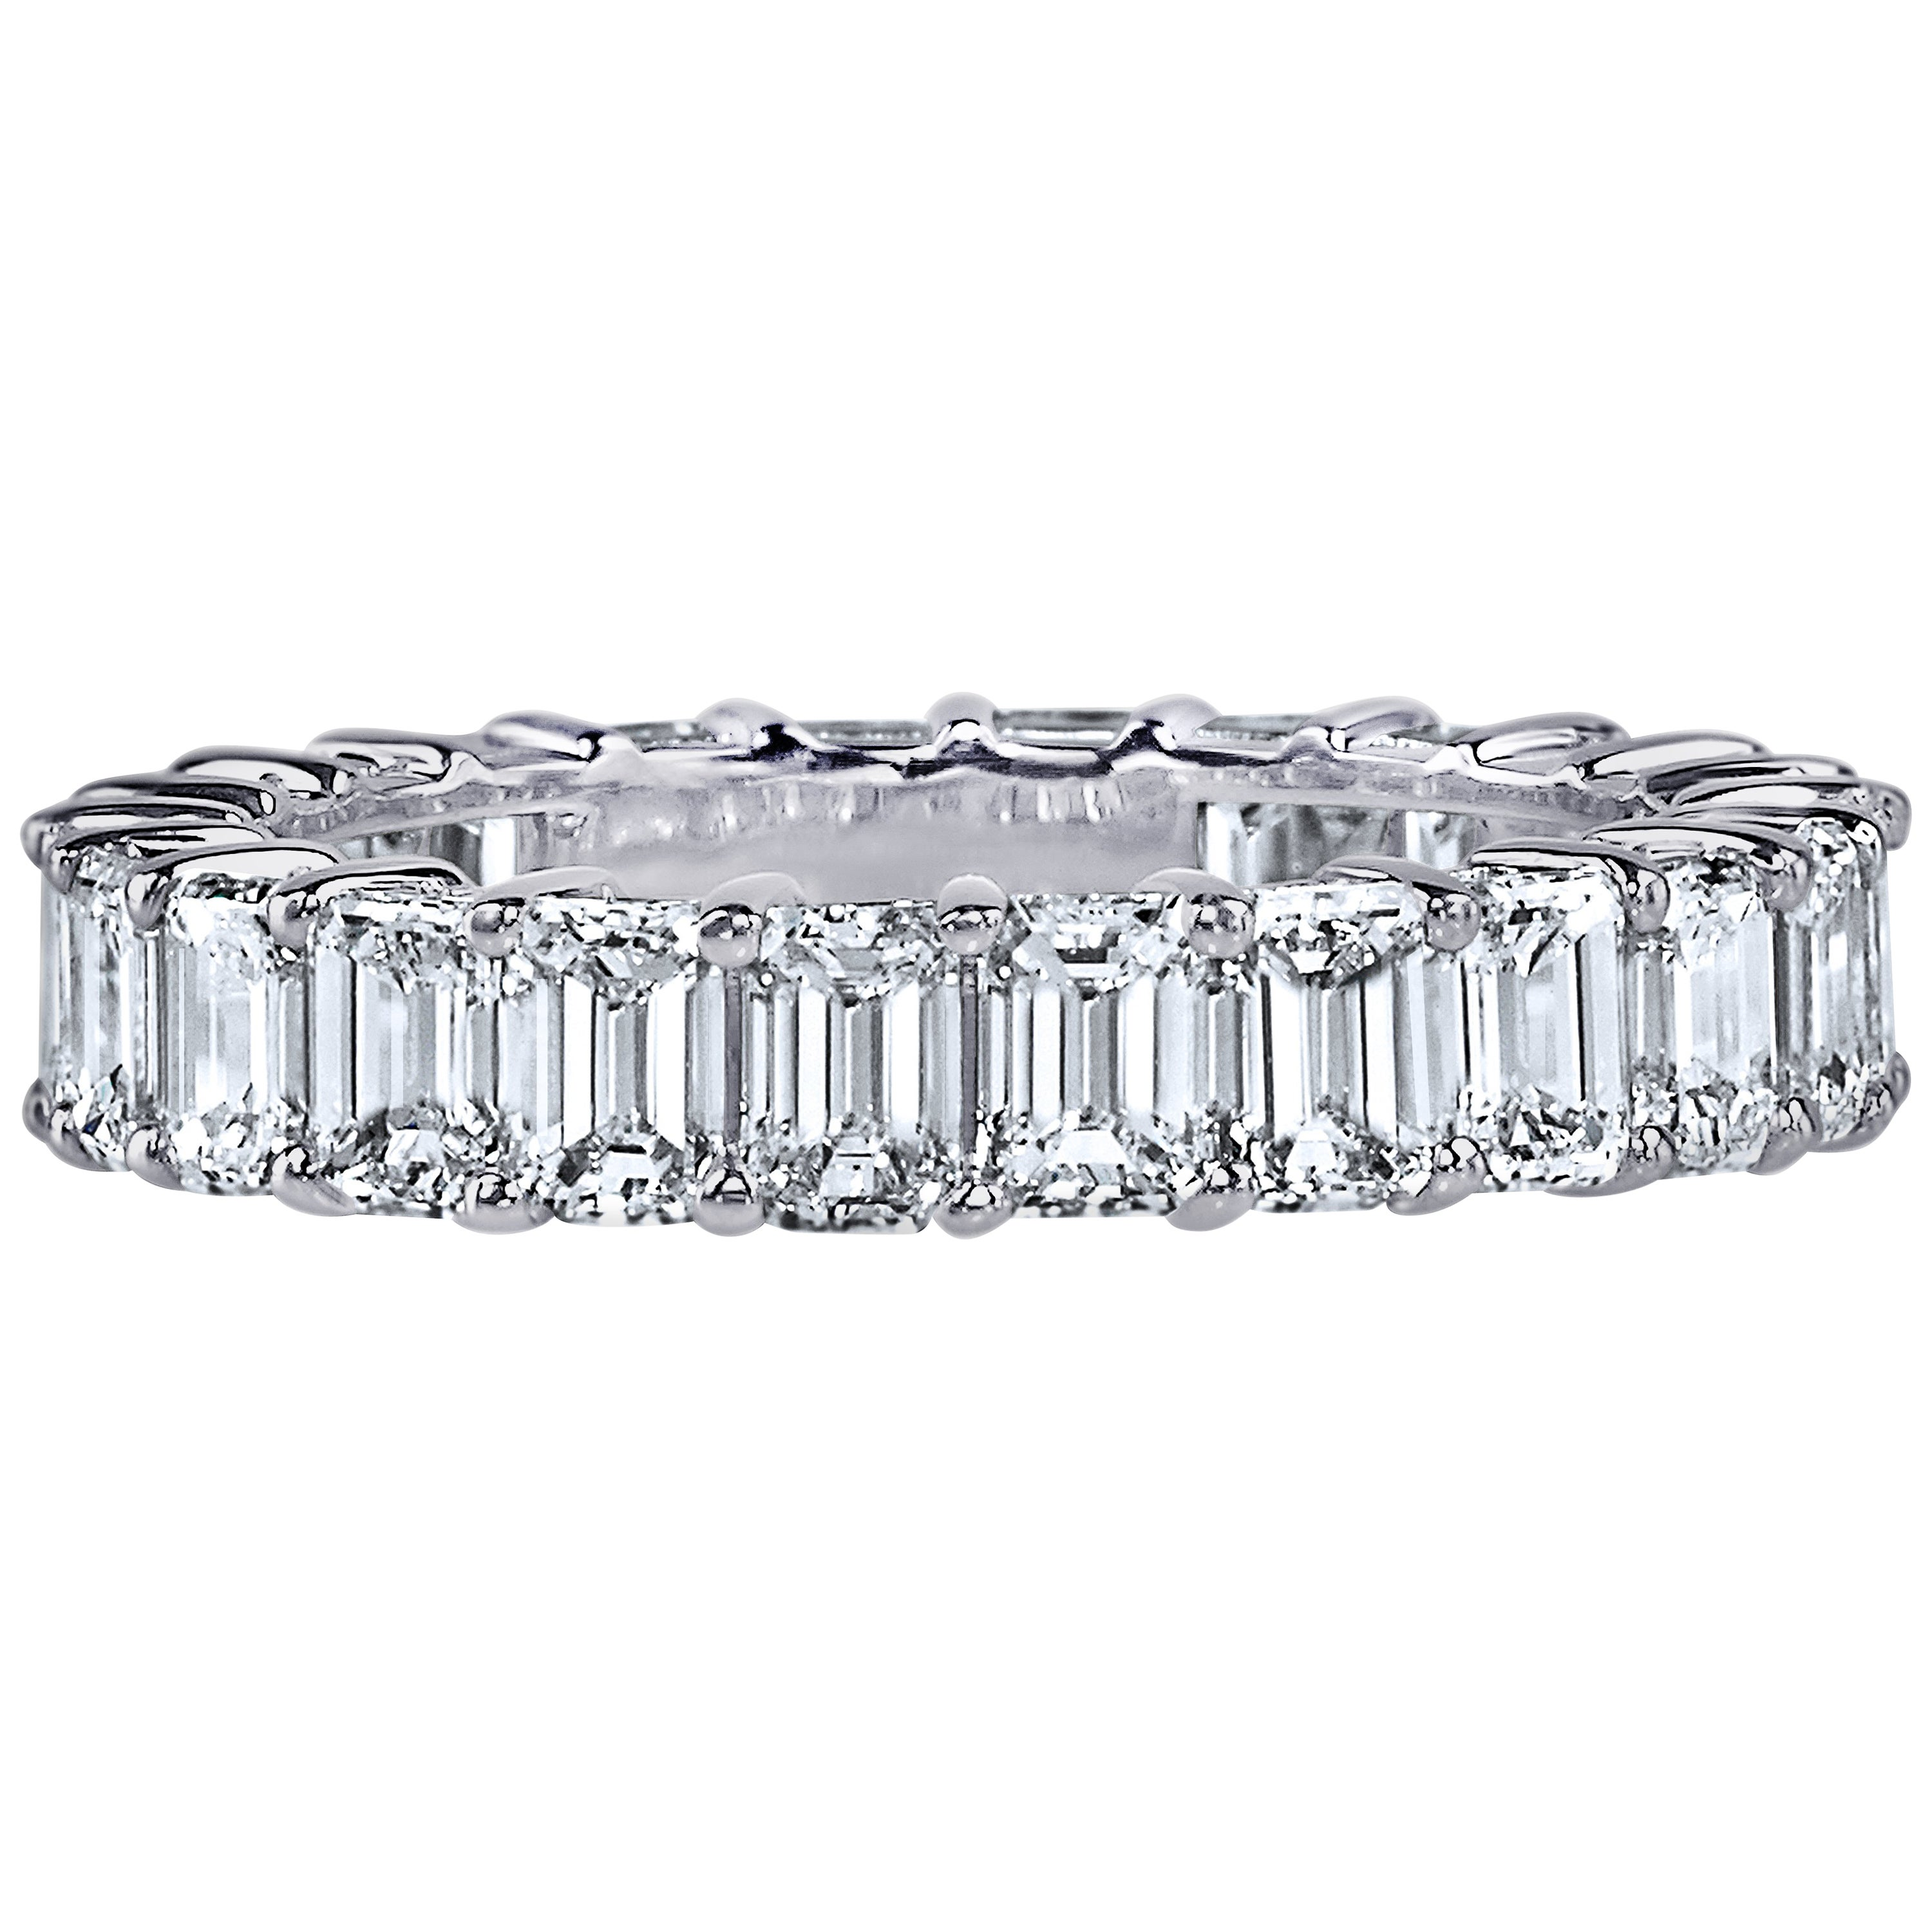 GIA Certified 5 Carat Emerald Cut Diamond Ring Platinum Eternity Band